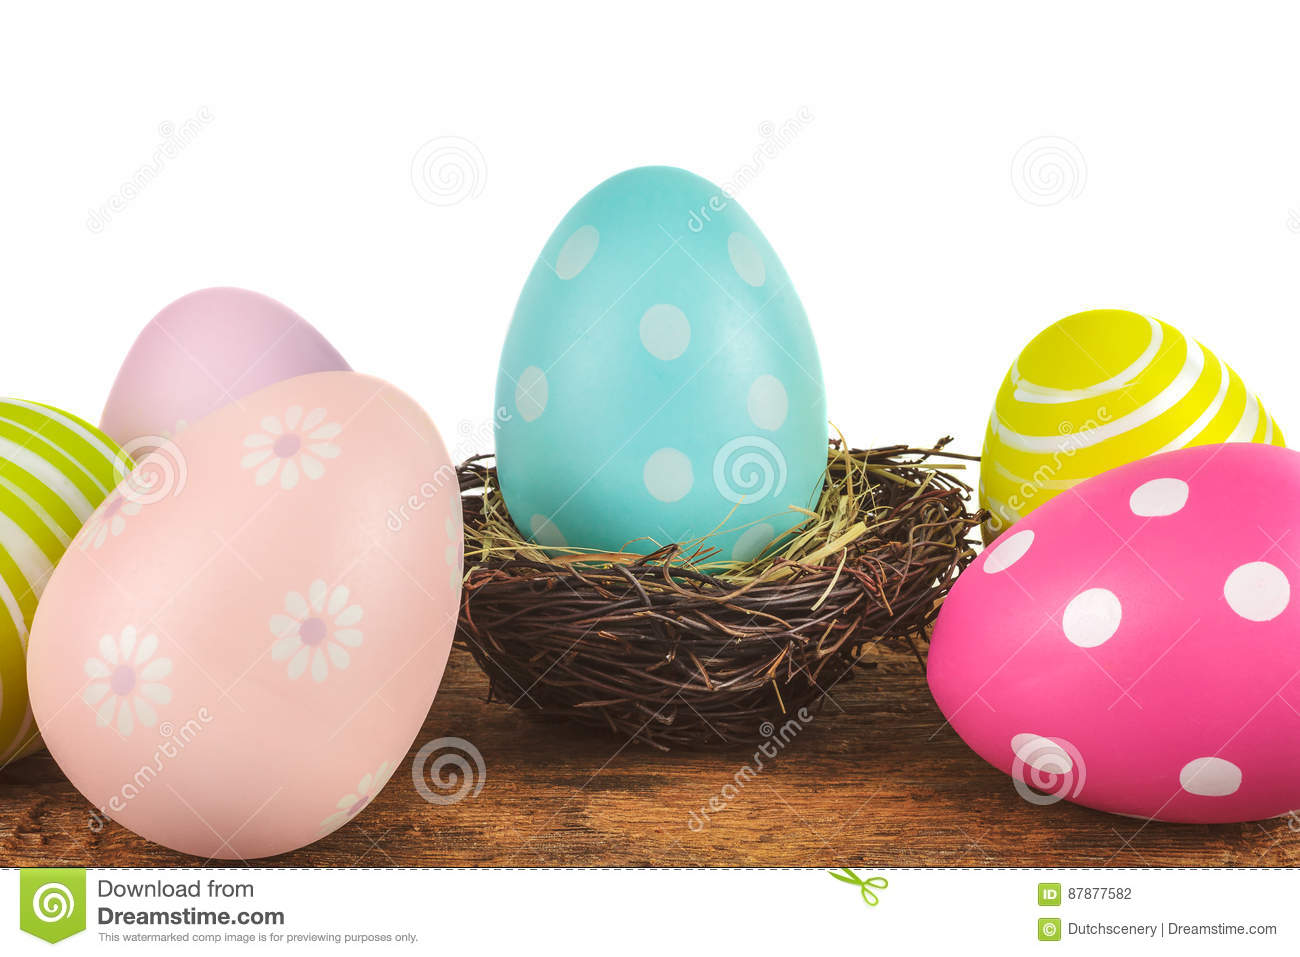 Colorful easter eggs on a wooden table isolated on white